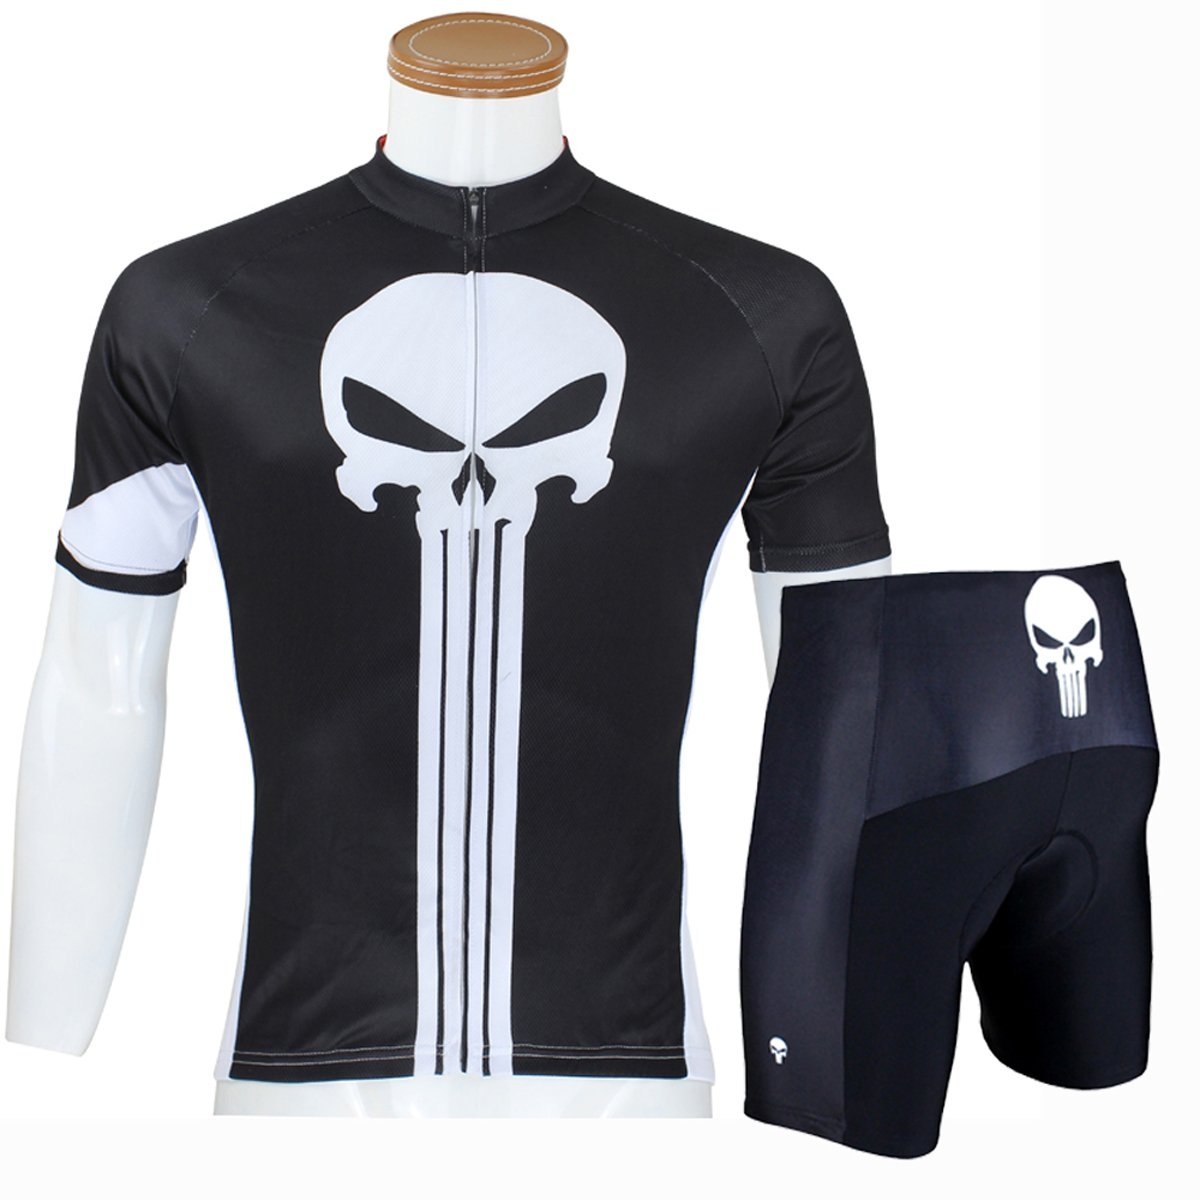 ILPALADINO Men's Black Cycling Shirts Punisher Pattern Bike Jerseys Tight Design